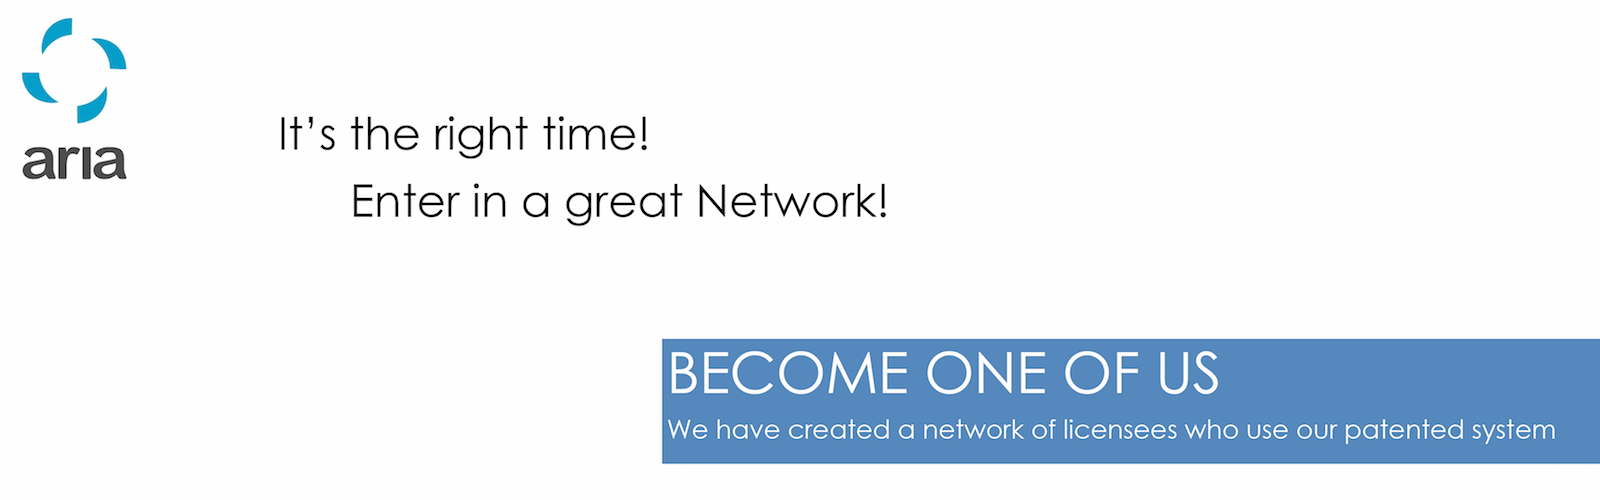 Enter in a great Network - Work with us